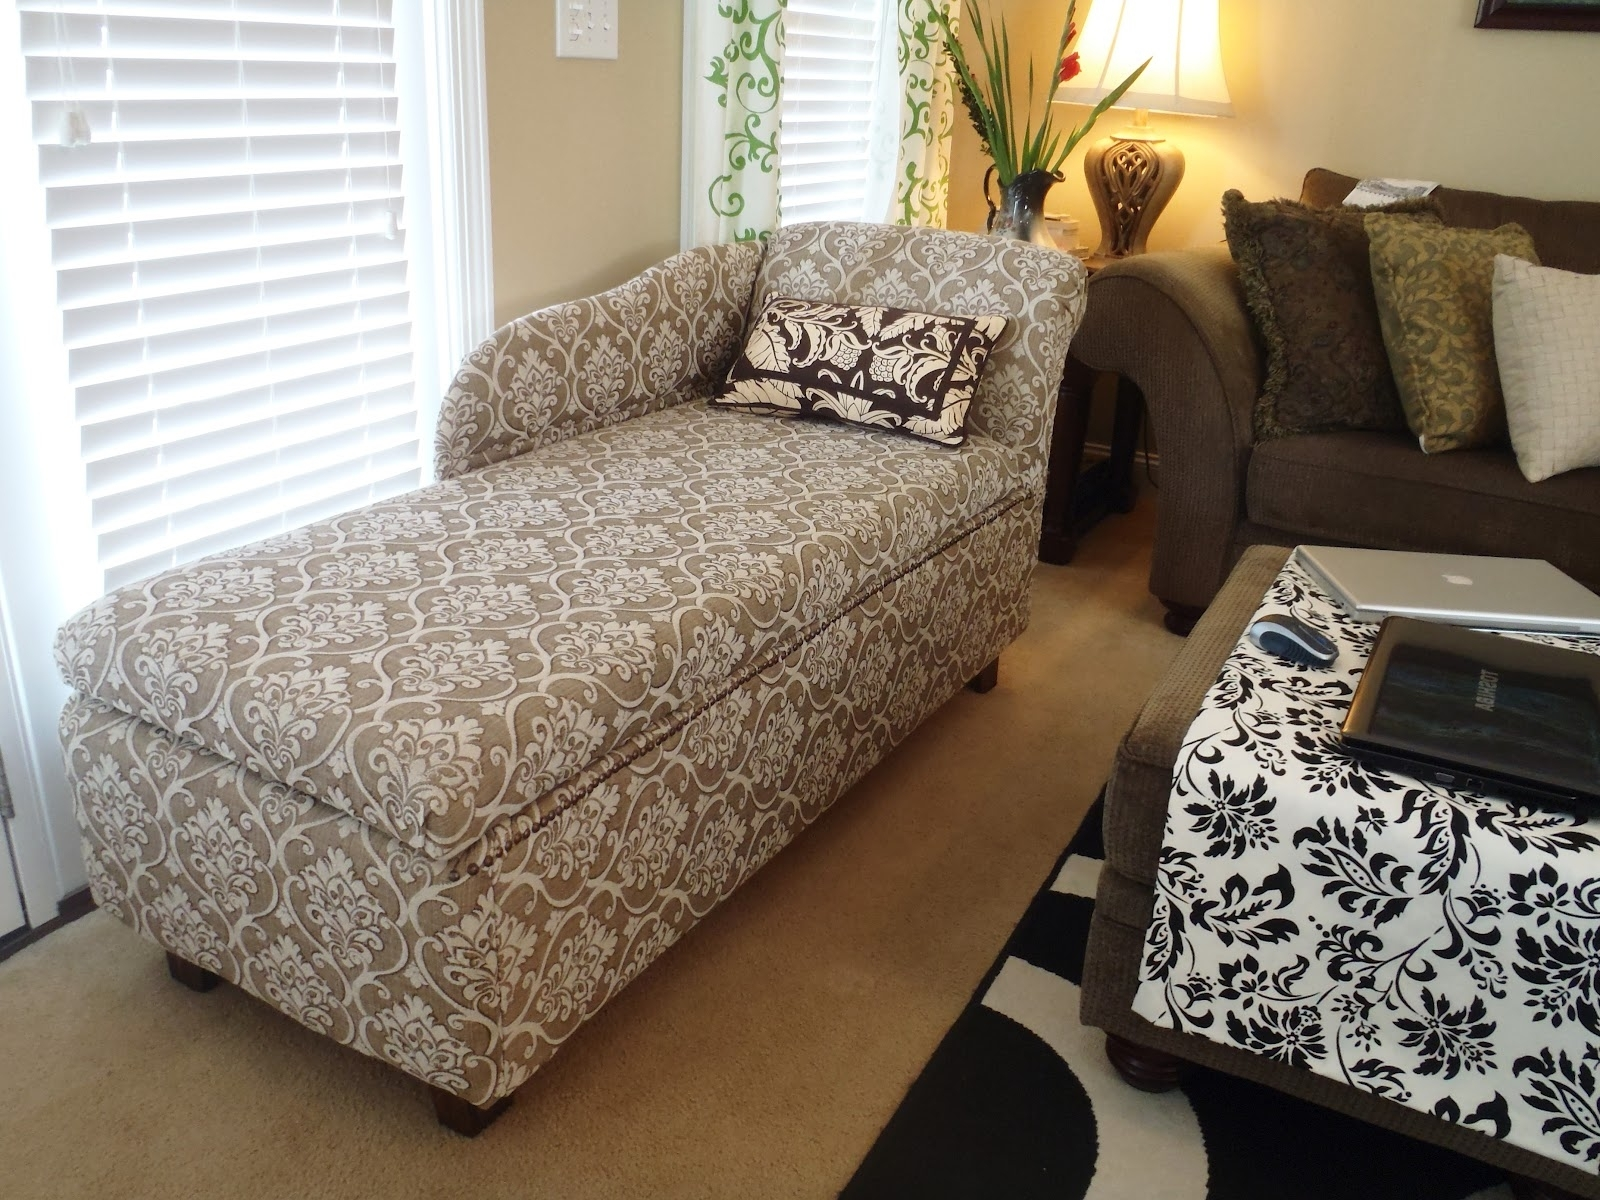 Chaise Lounges With Storage Within Recent Lazy Liz On Less: Storage Chaise Lounge (View 15 of 15)